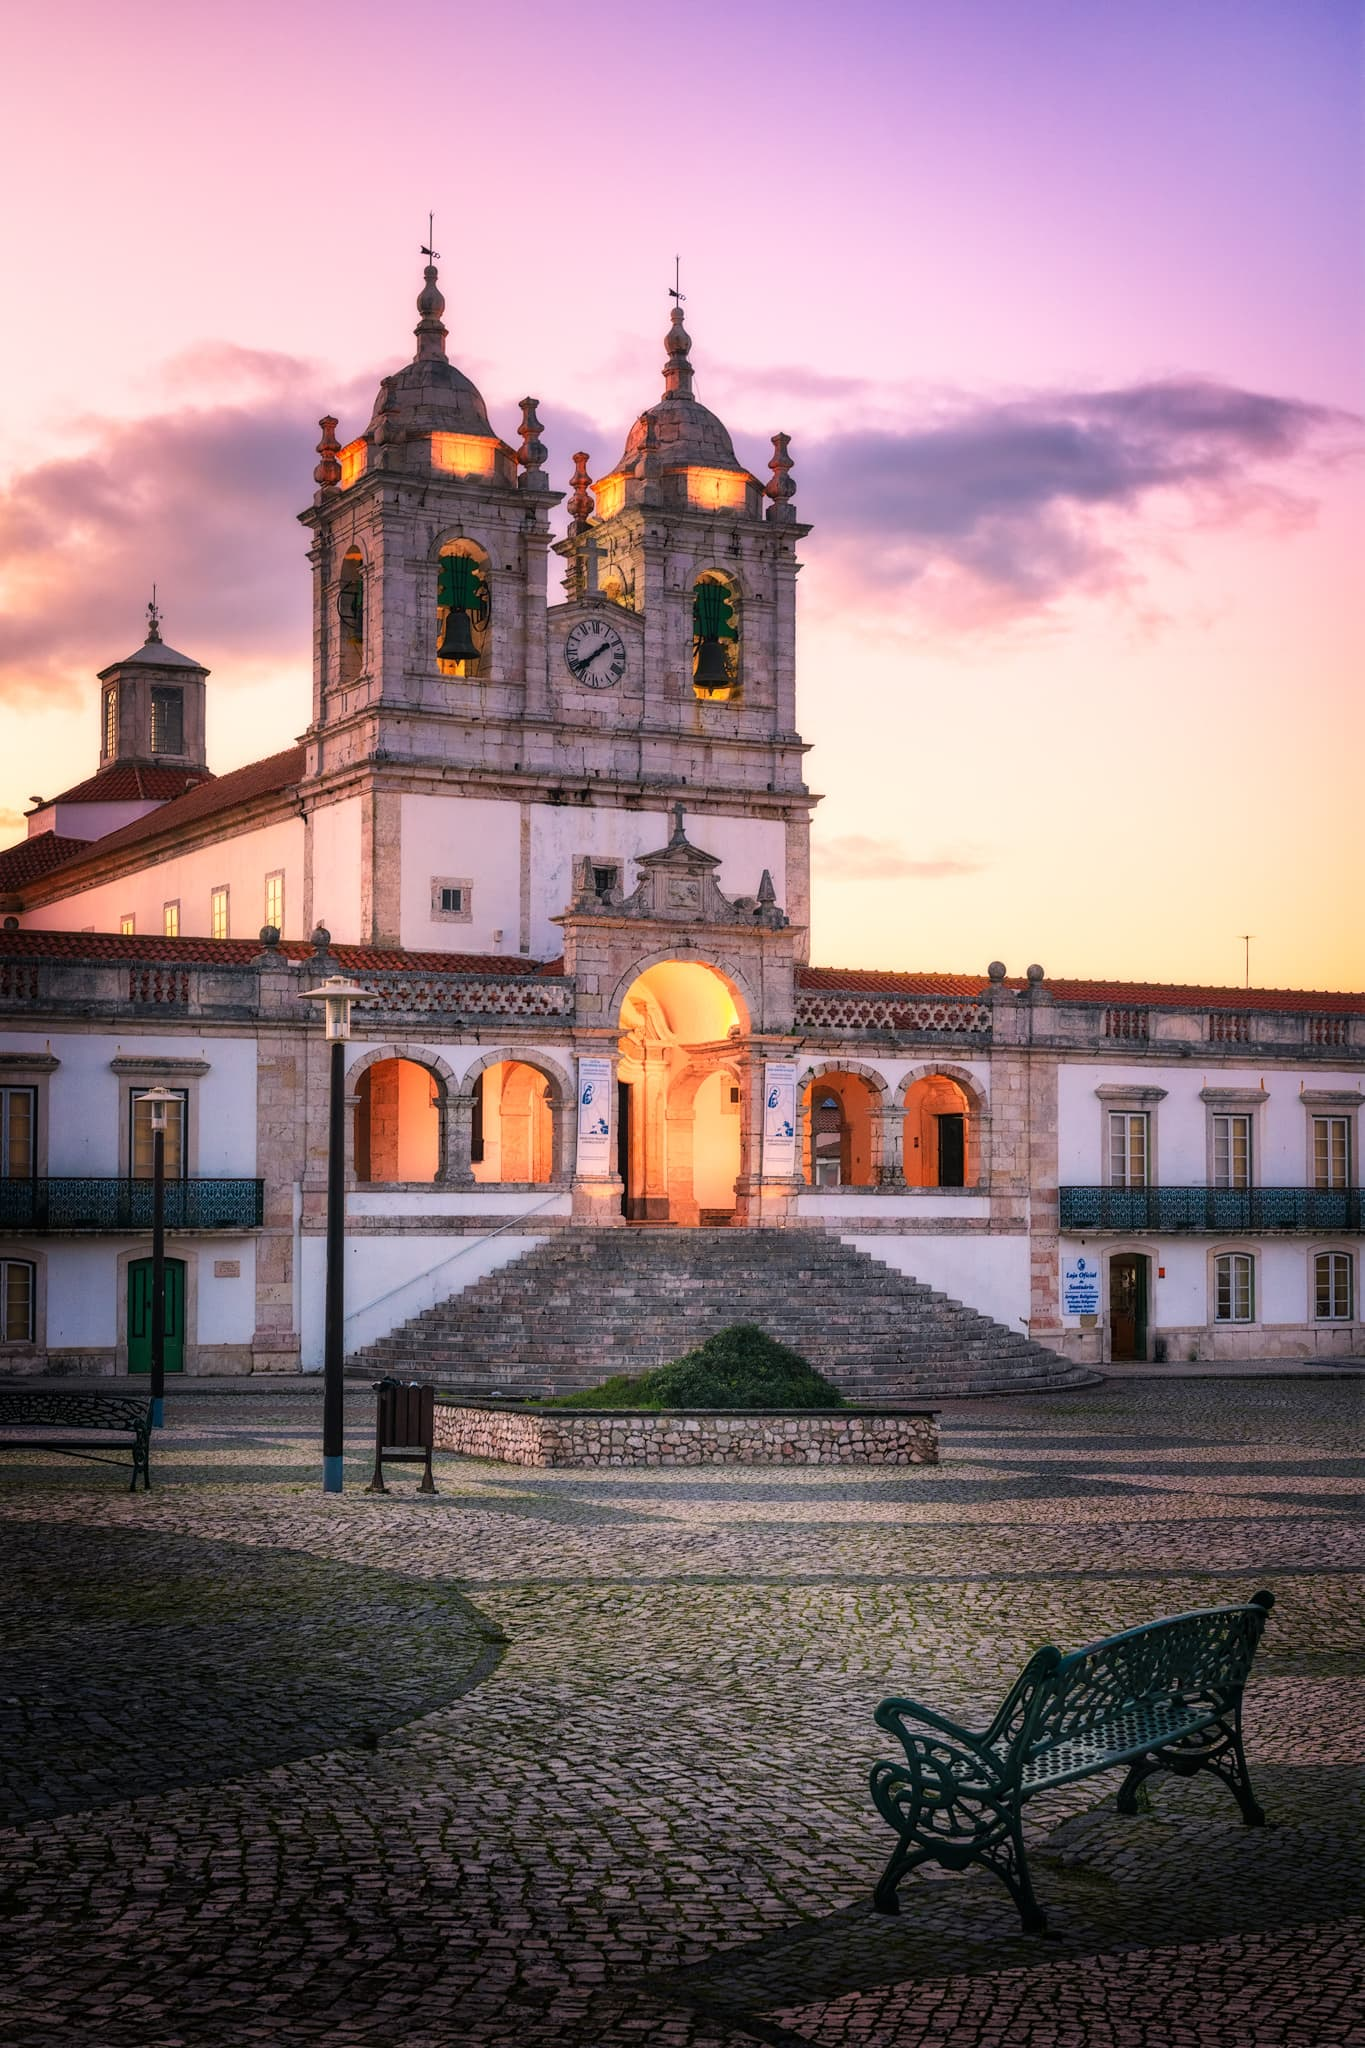 Church of Nossa Senhora da Nazaré. Nazare during sunset, Portugal